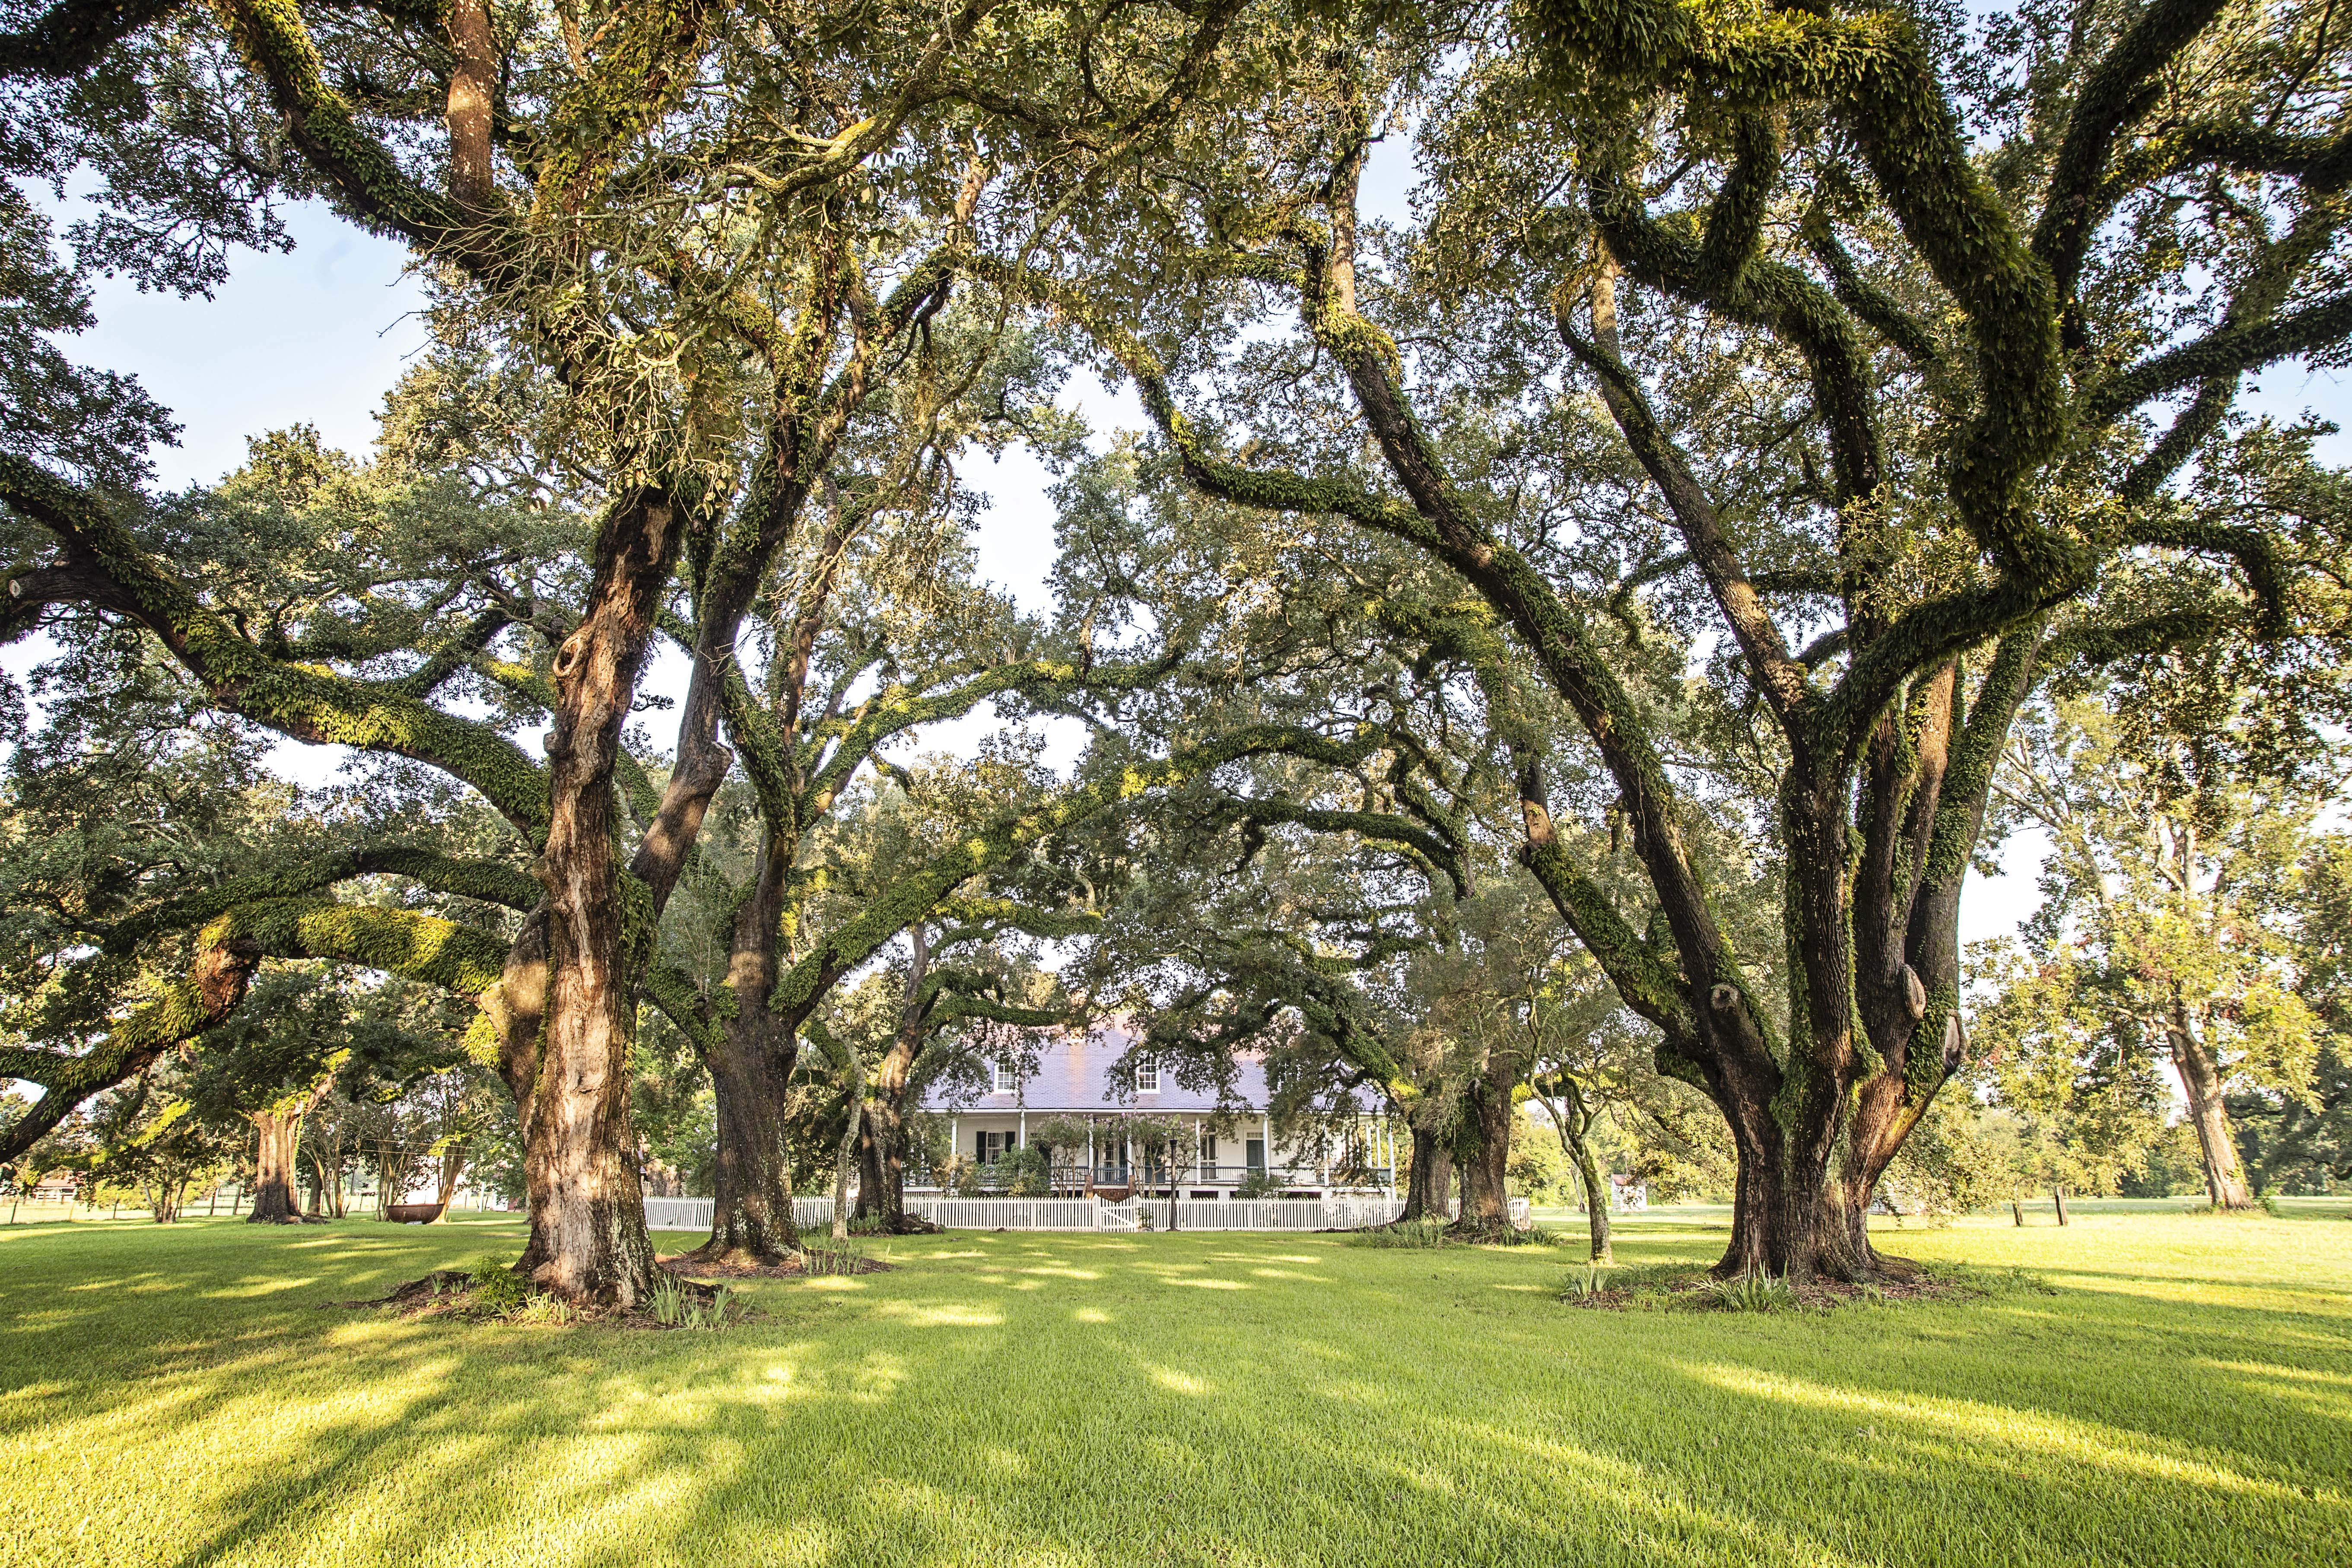 Large Live Oak trees from an Oak Allee on either side of the original entrance to the Main House.